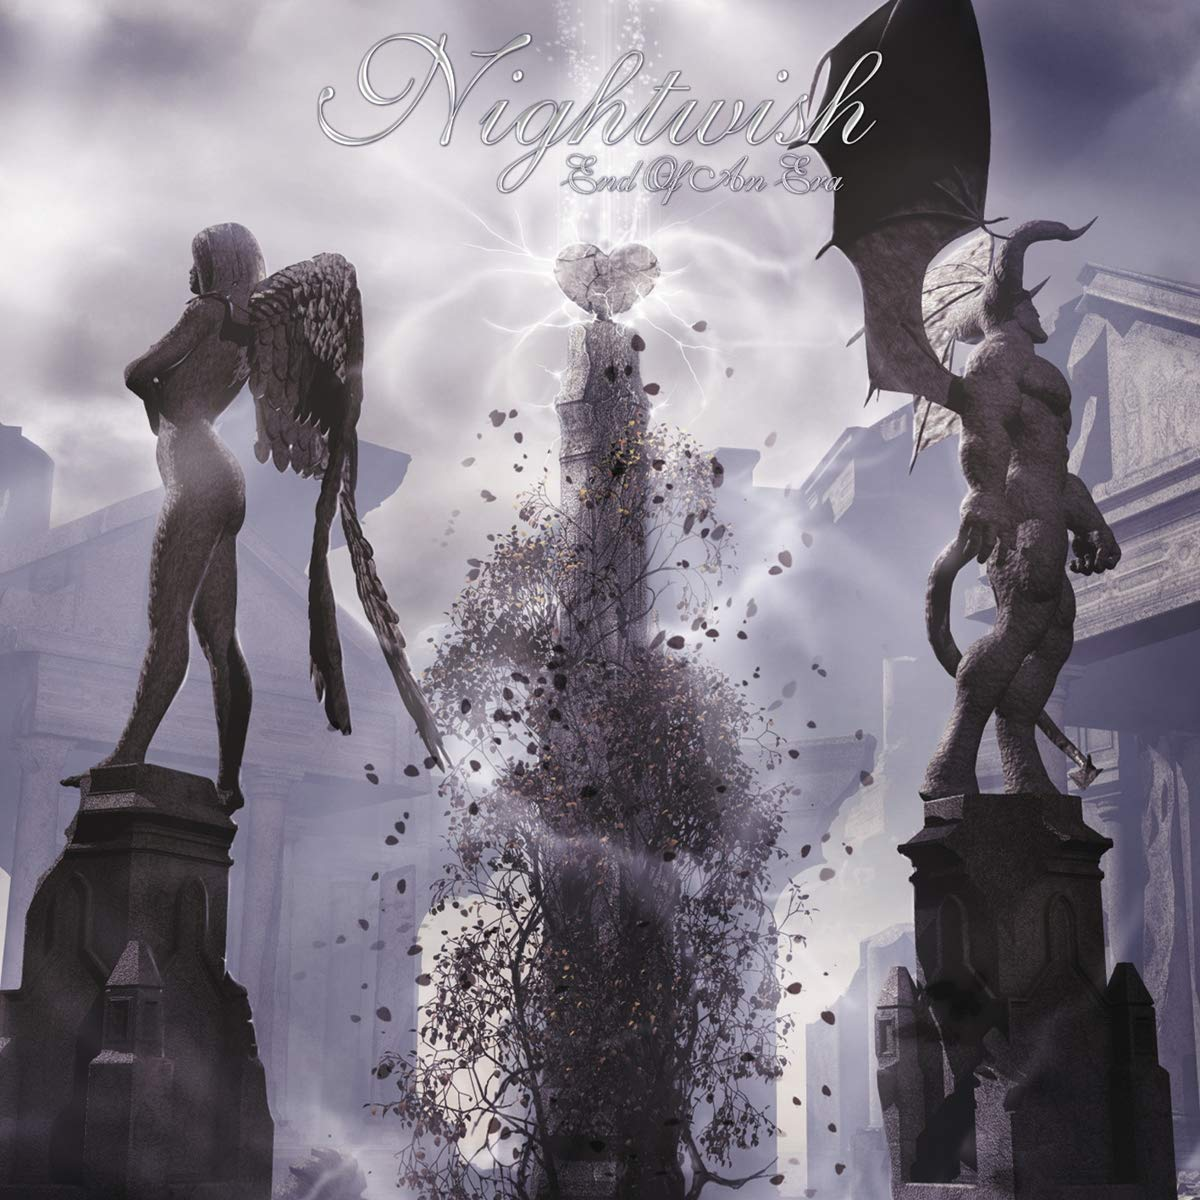 Nightwish - End Of An Era [Limited Edition LP Box Set]